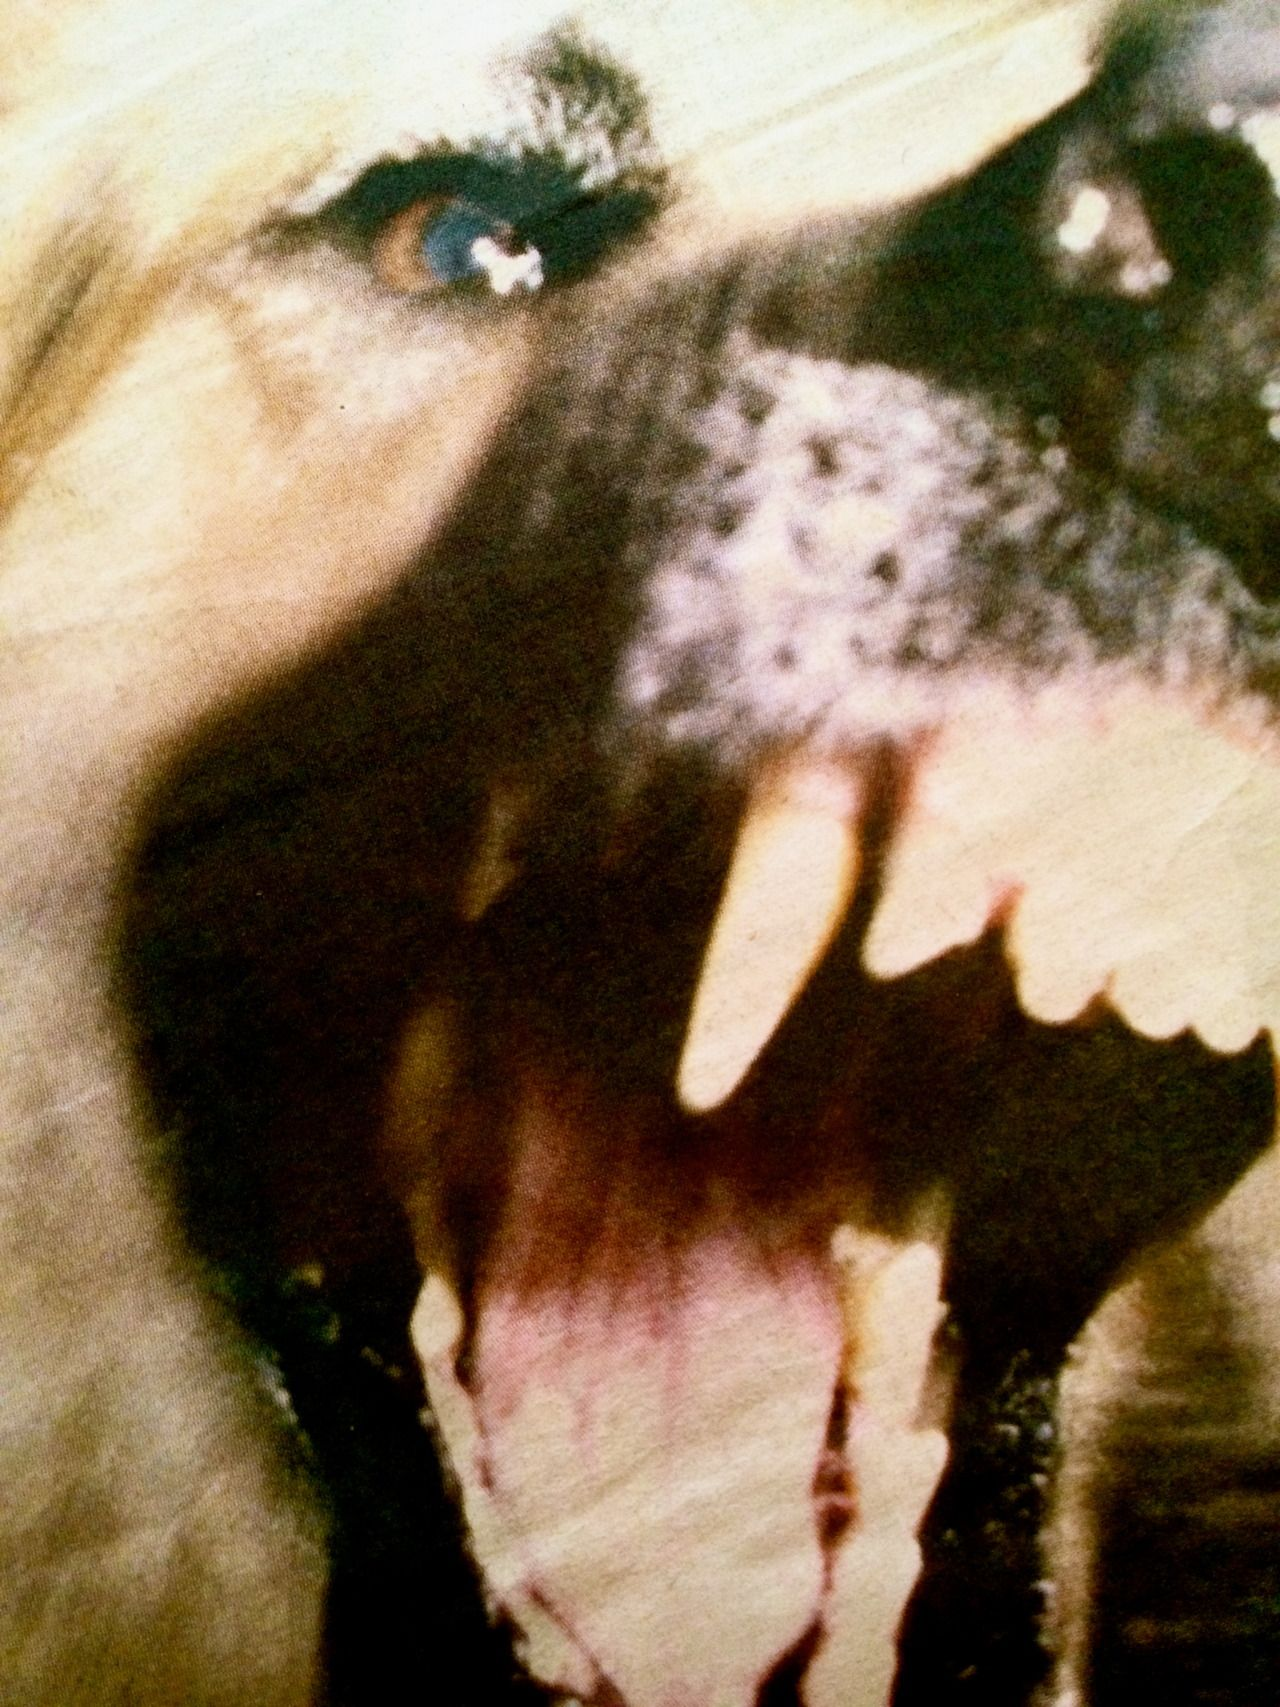 If You Have Been Bitten By A Dog In Chicago Or In Another City In Illinois And Need Legal Representation For Your Injuri Scary Dogs Givenchy Dog Creepy Animals